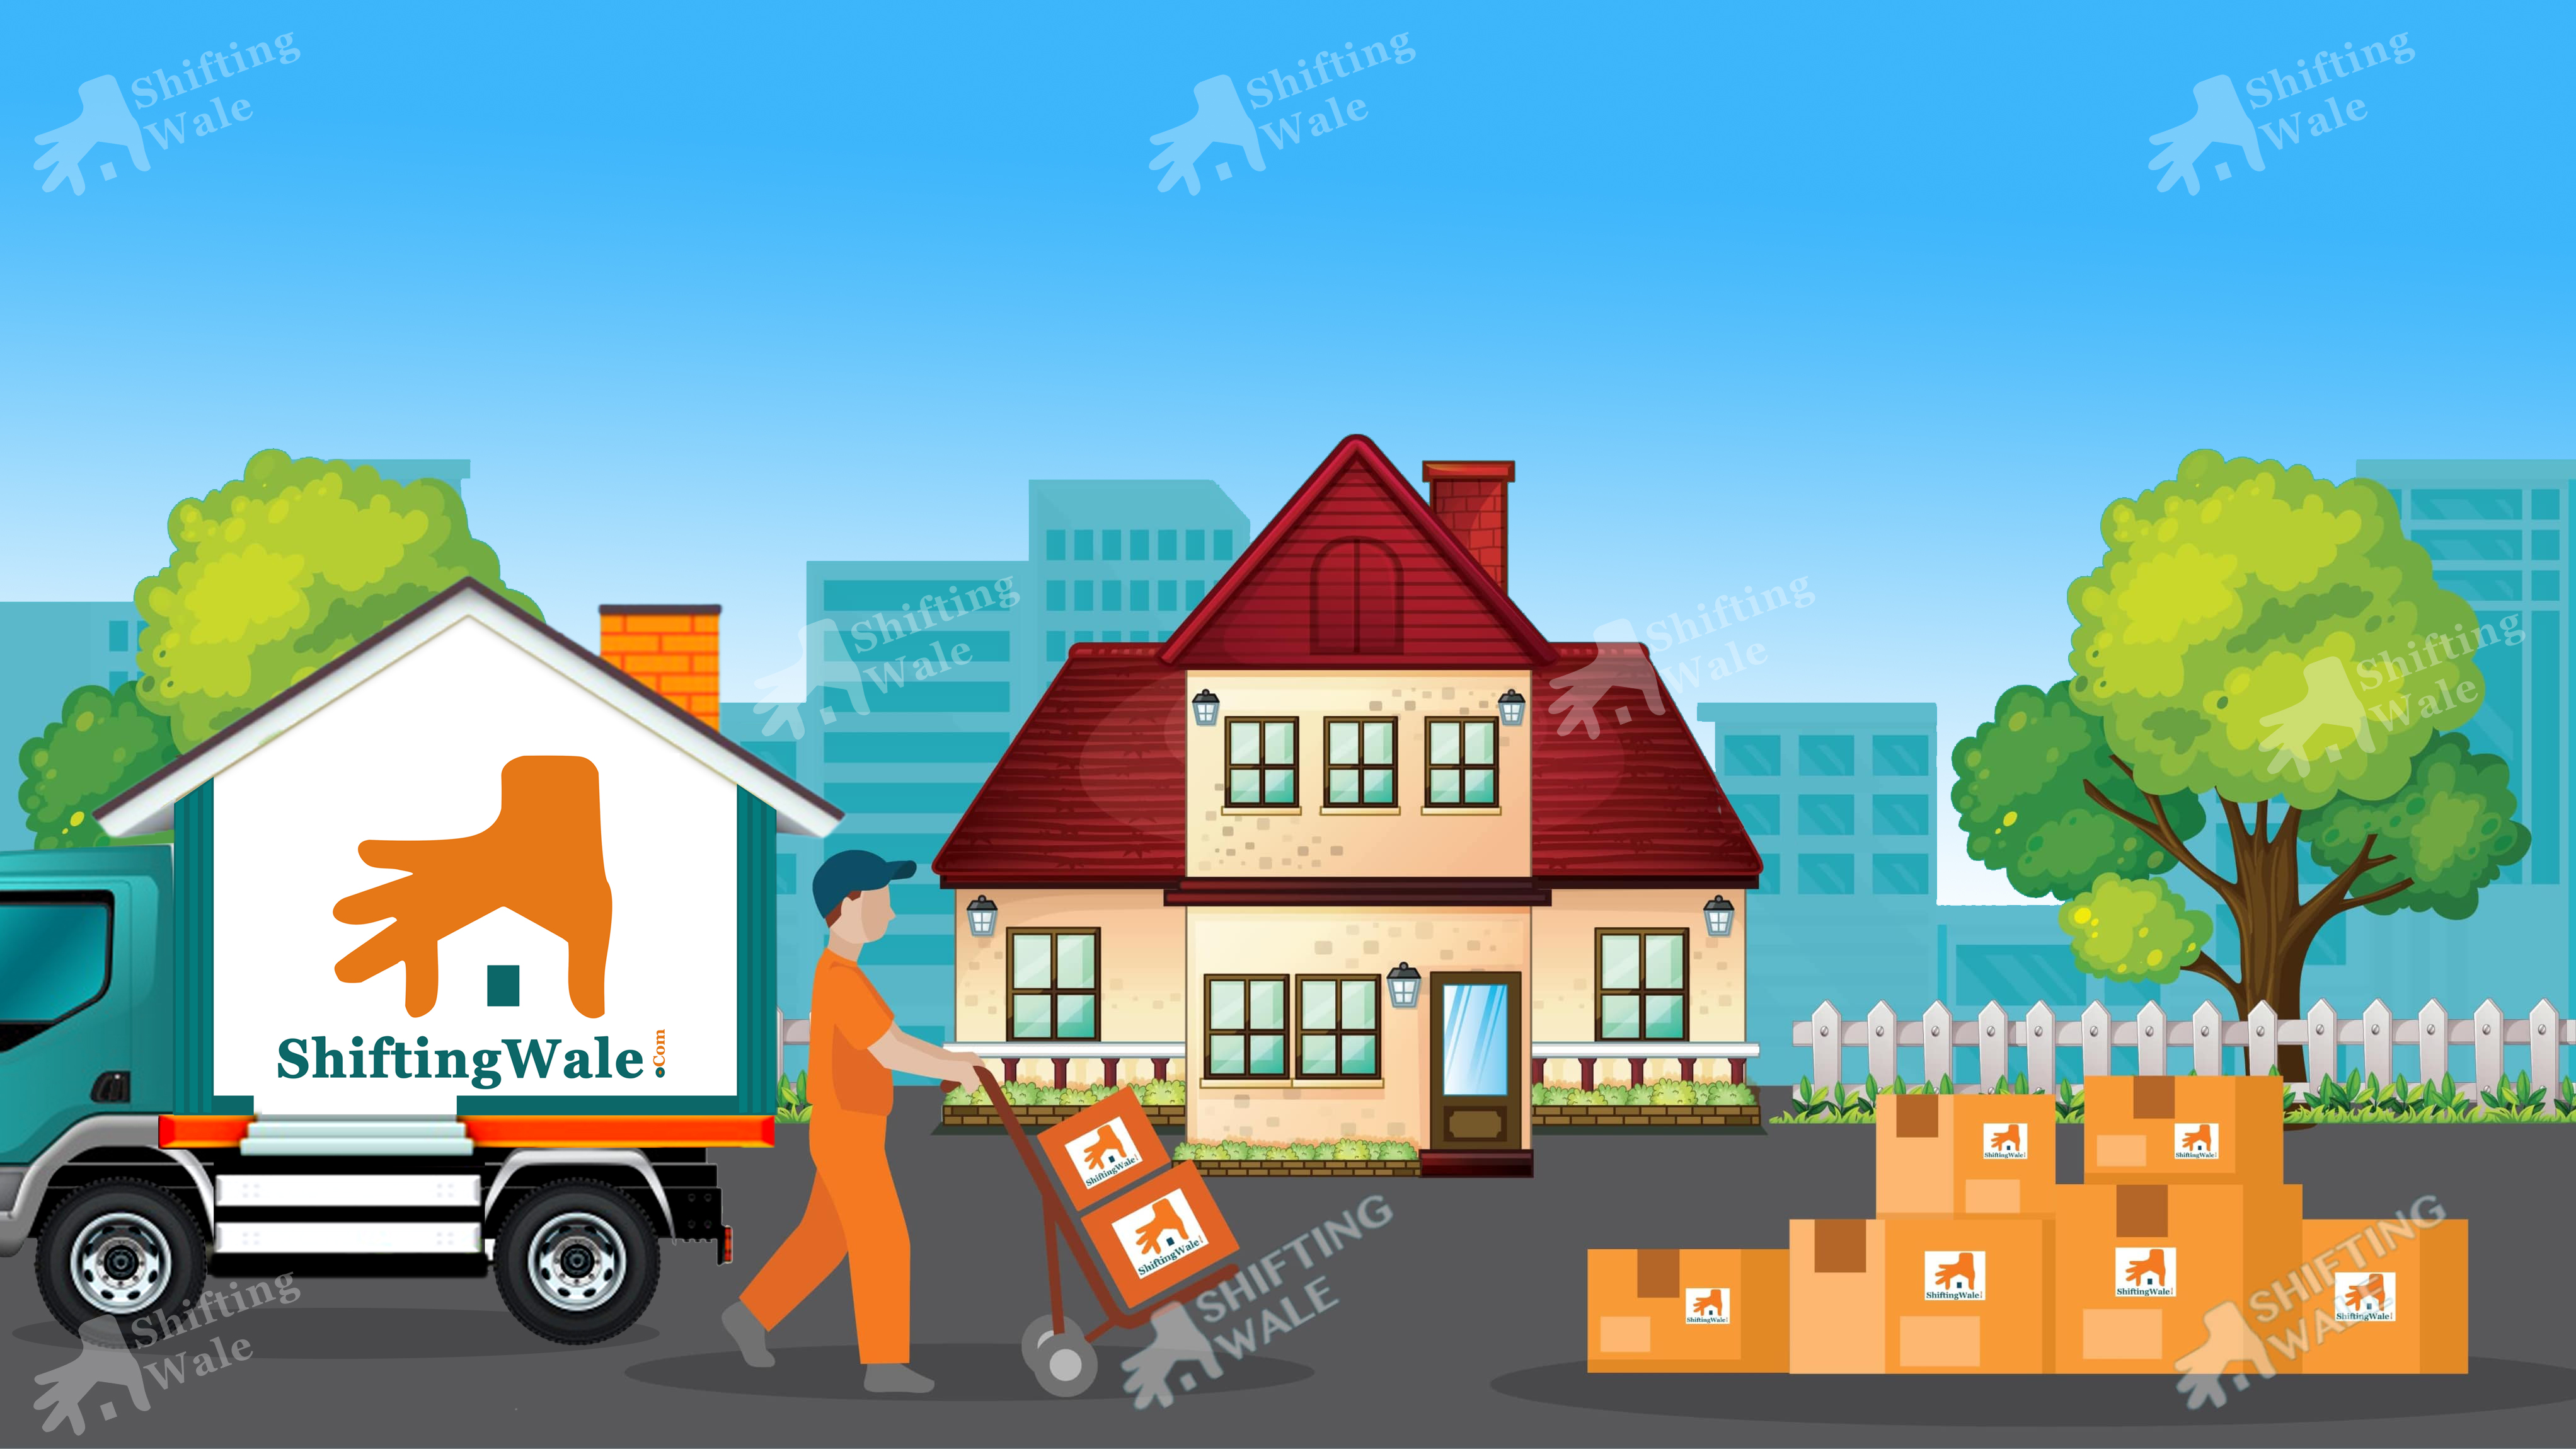 Reliable Movers and Packers Services from Hyderabad Bangalore Chennai Kochi to Kanpur Lucknow Allahabad Varanasi Patna